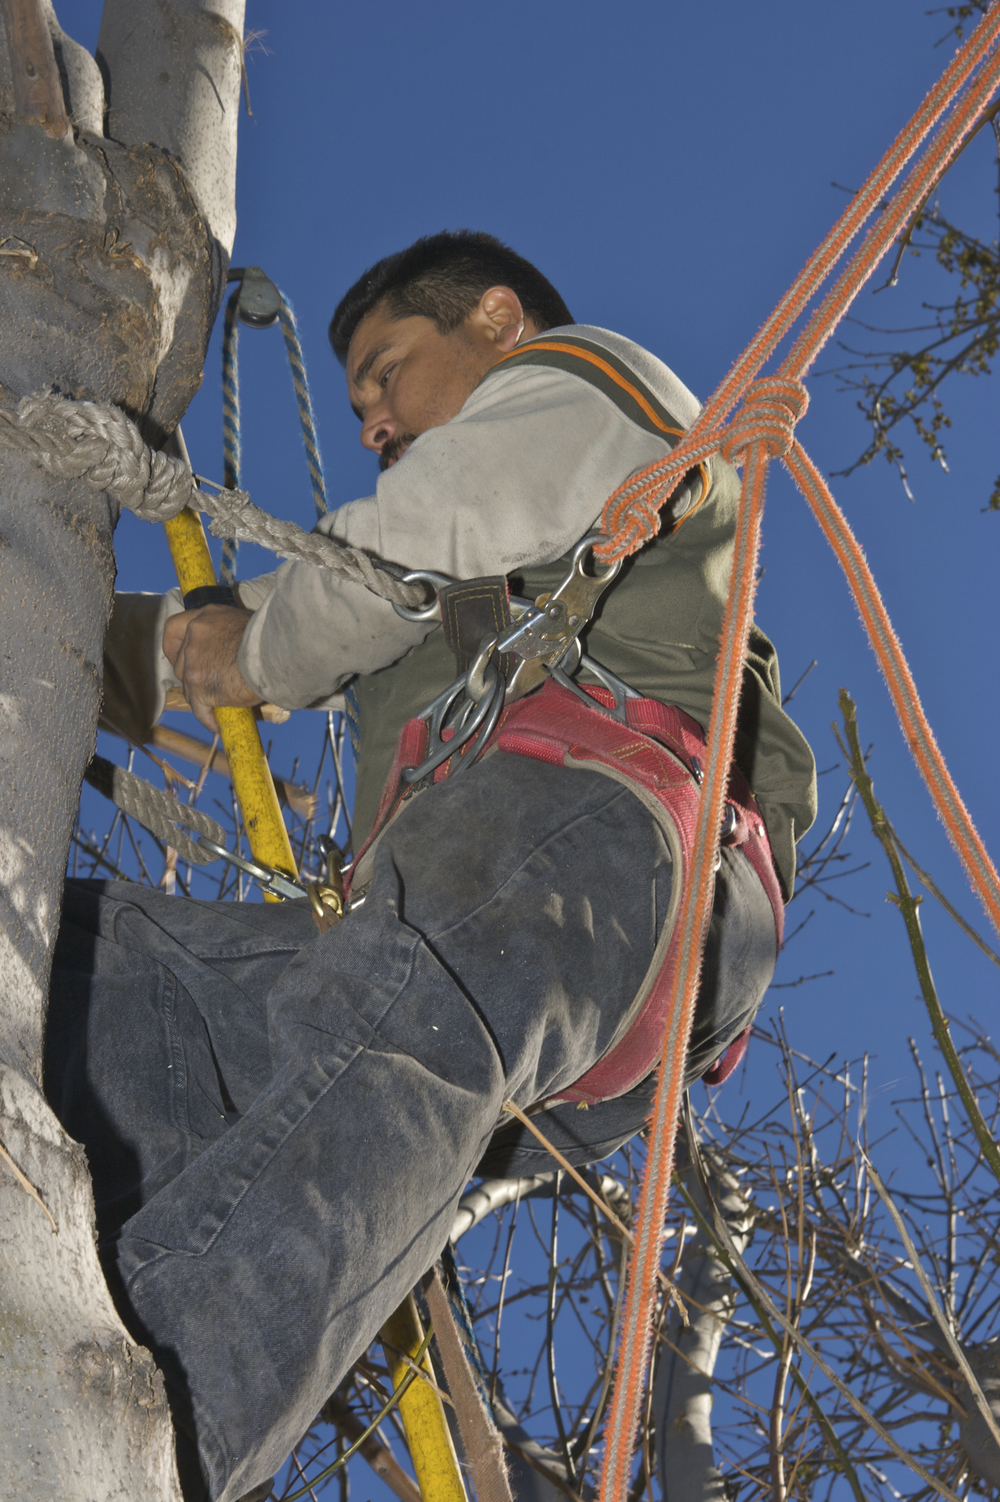 Copy of Copy of Rope, arborist, climbing